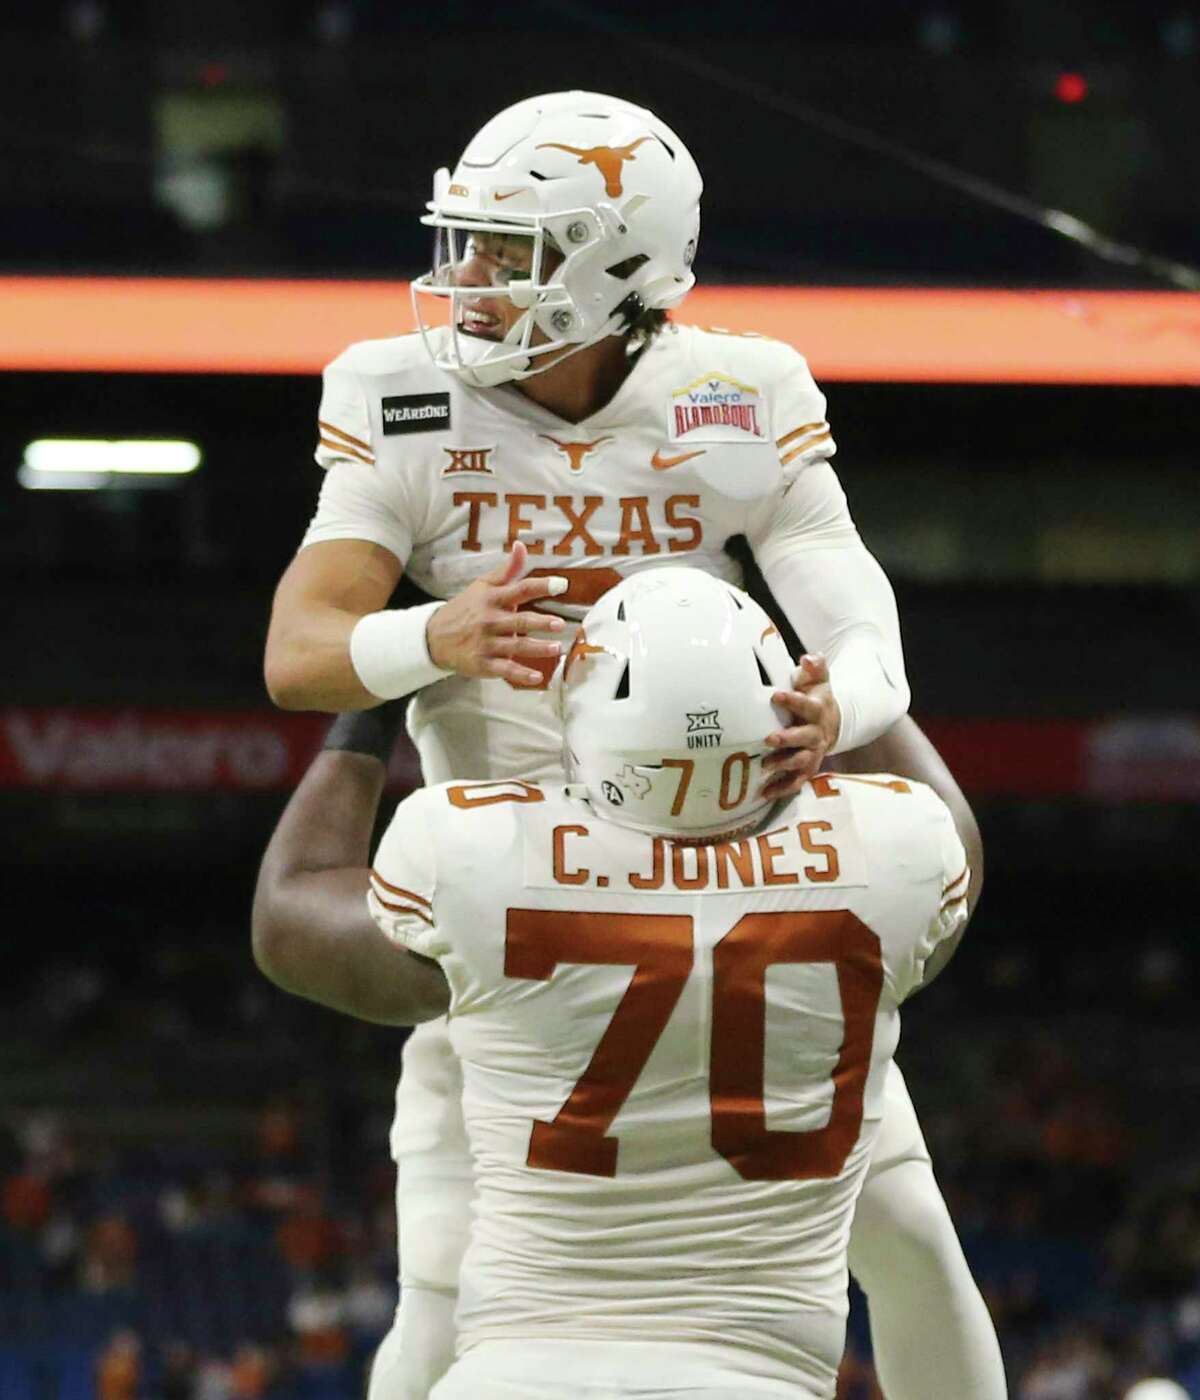 Texas quarterback Casey Thompson (08) gets lifted up by teammate Christian Jones (70) after a team touchdown against Colorado during the 2020 Valero Alamo Bowl at the Alamodome on Tuesday, Dec. 29, 2020.